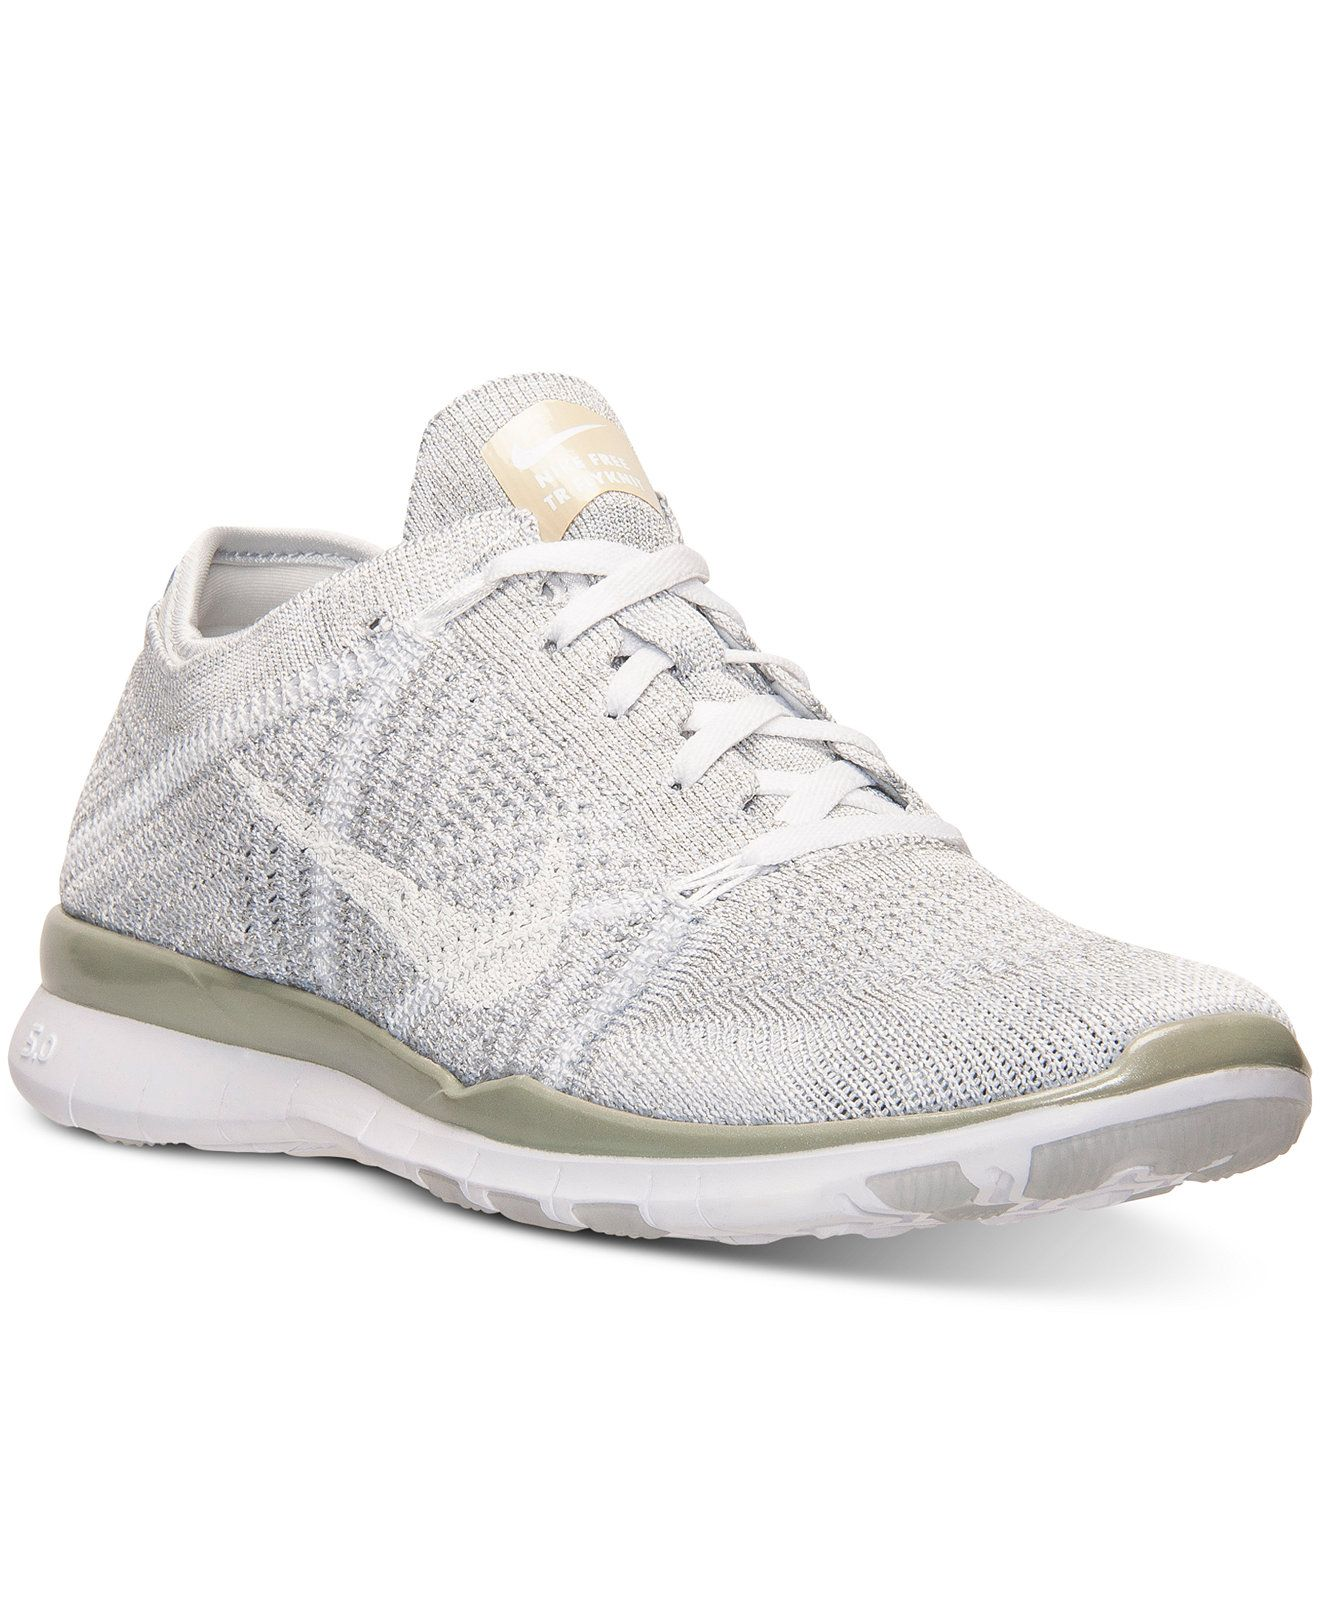 nike women's free 5.0 tr flyknit metallic training sneakers